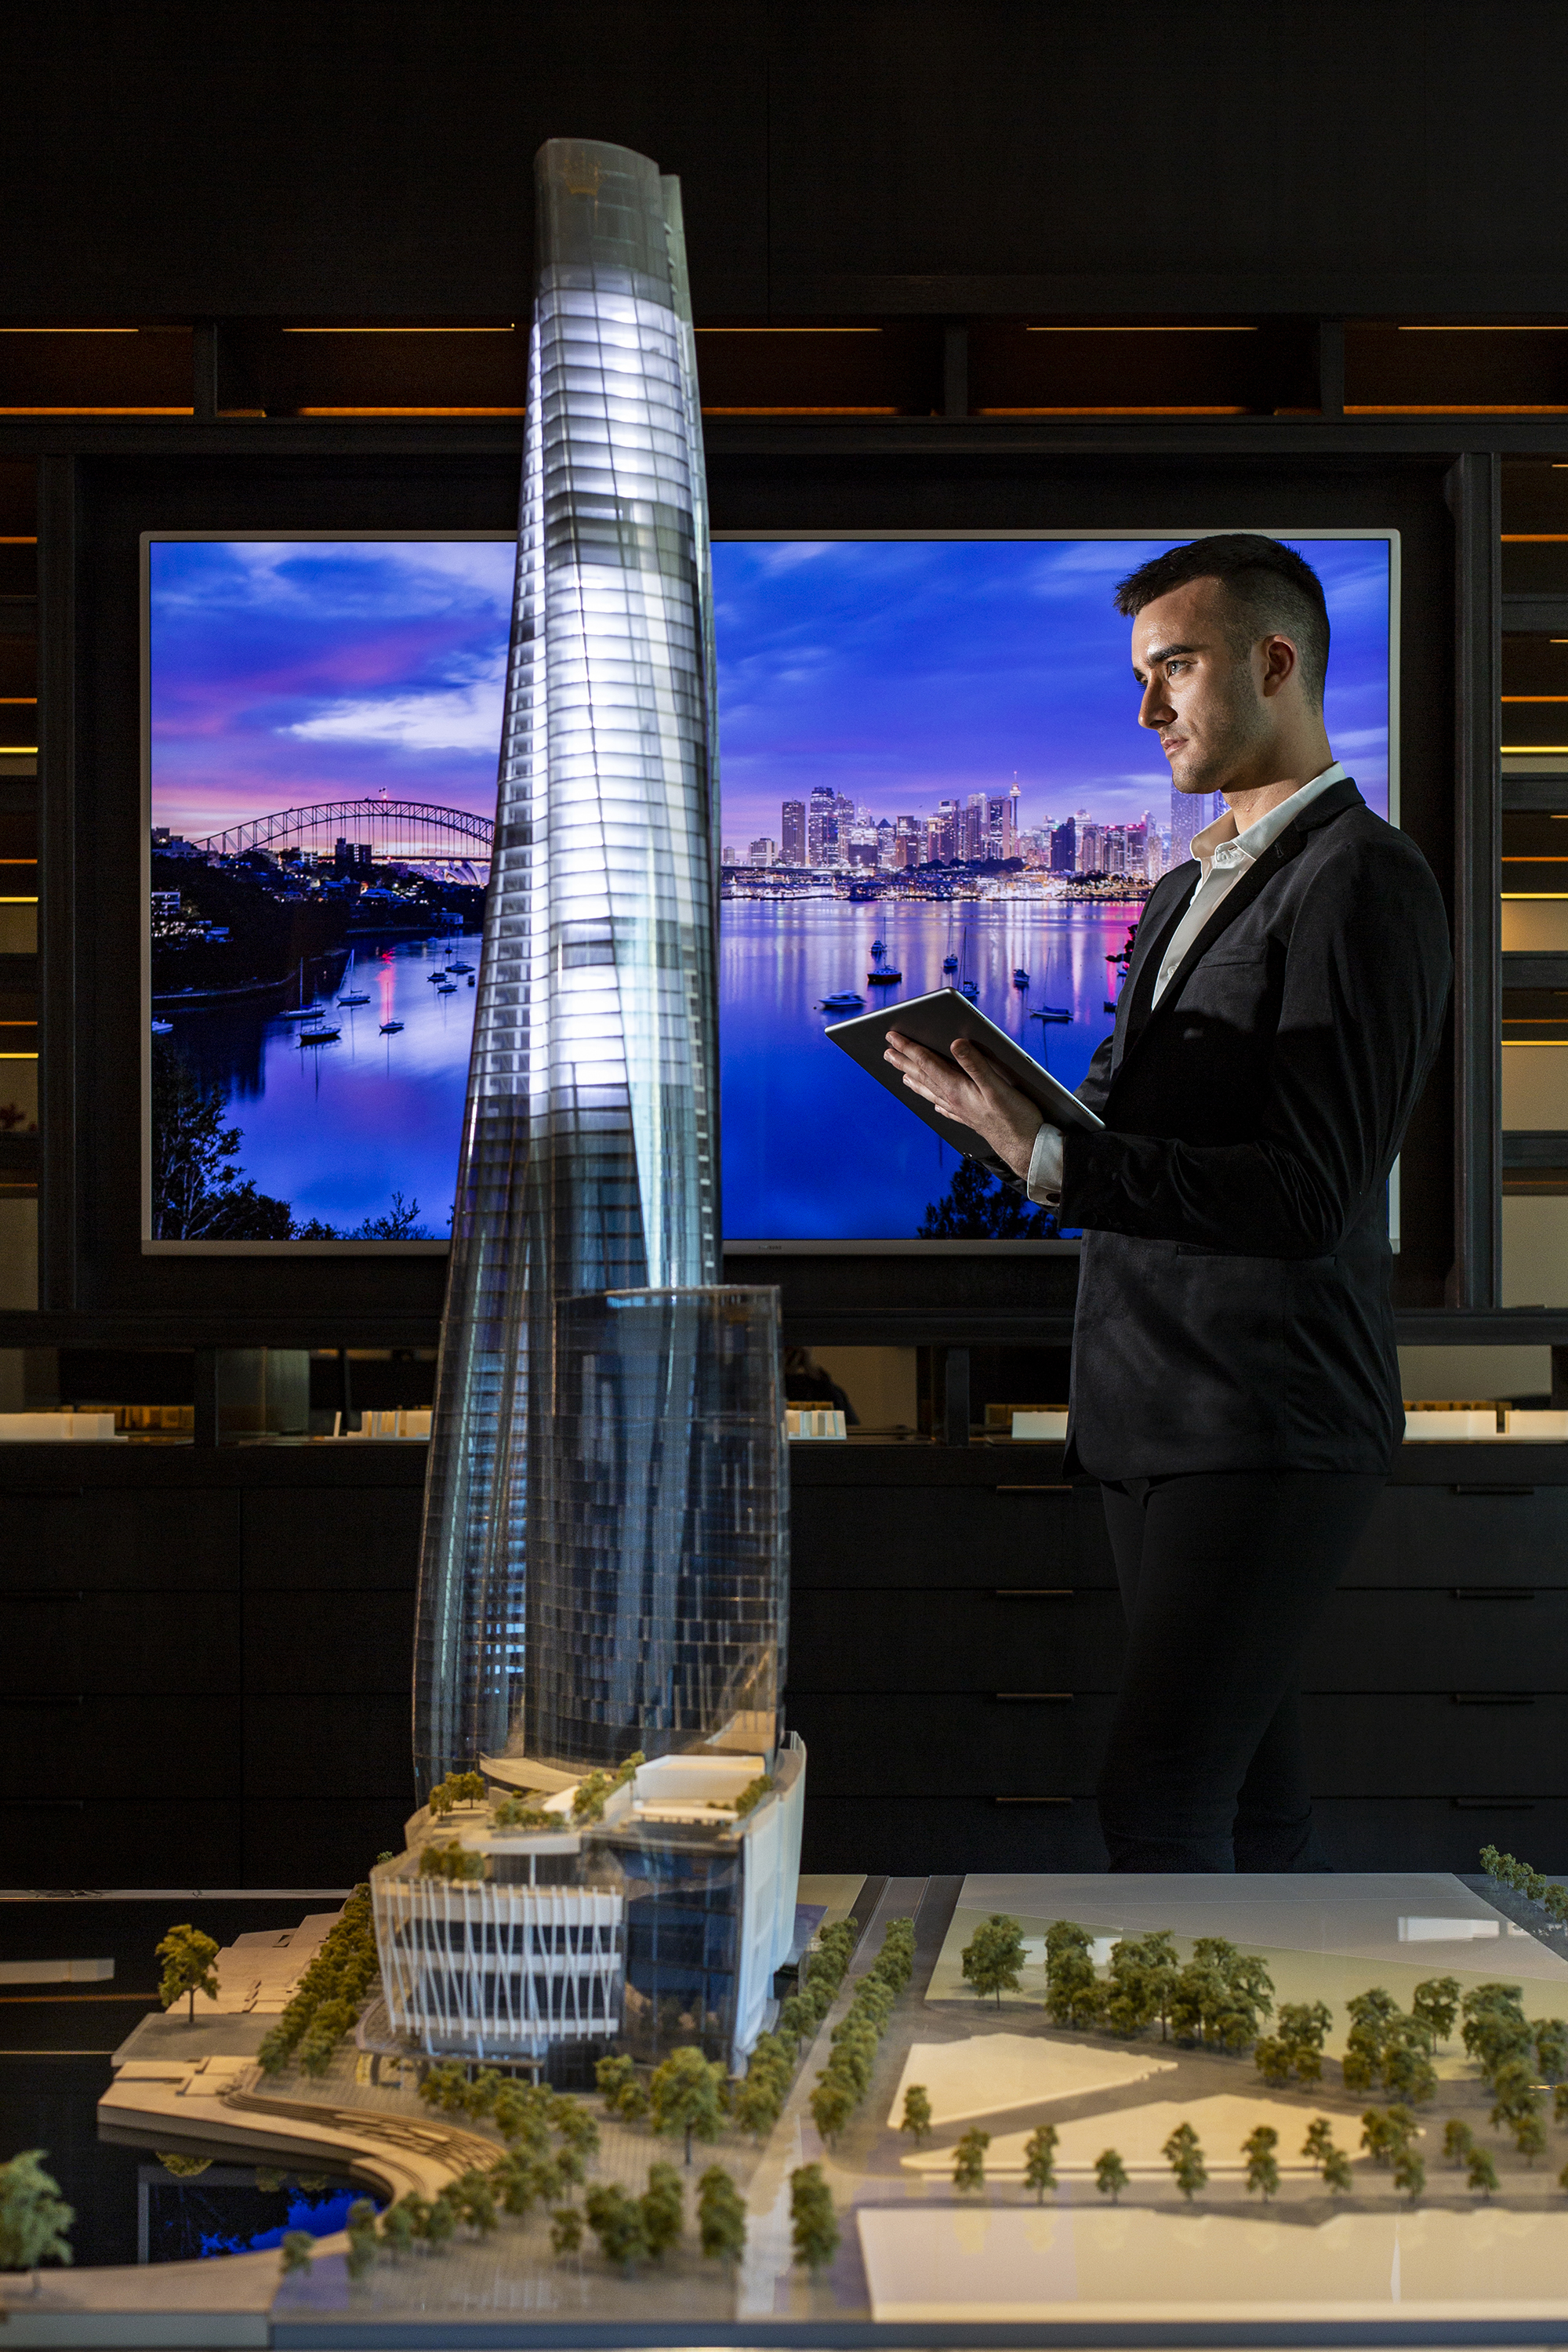 Crown_OneBarangaroo_Displaysweet_Model.jpg